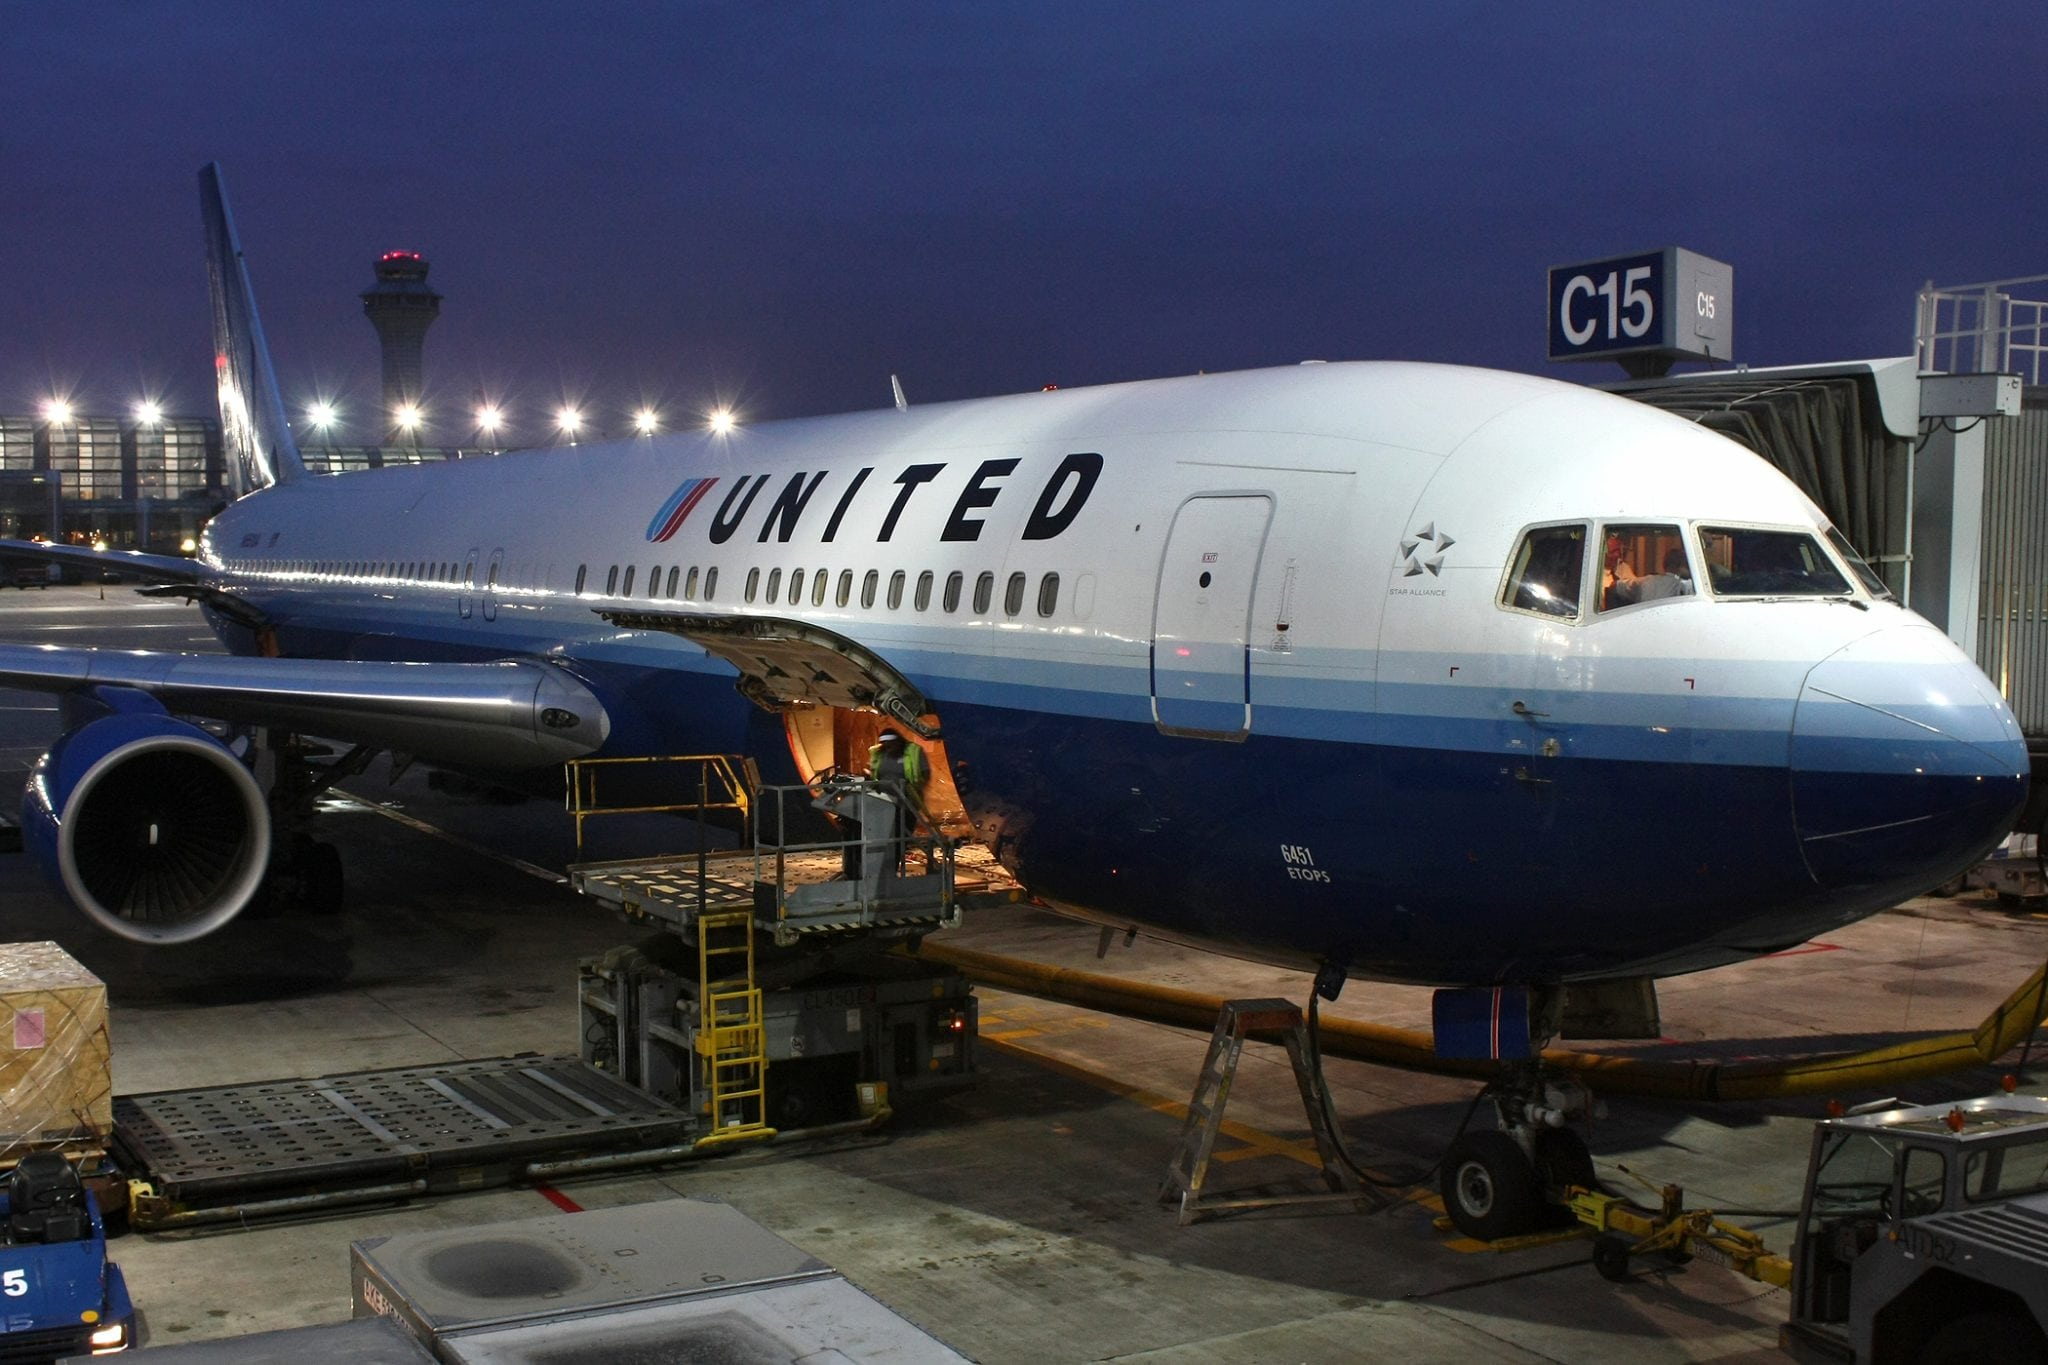 United sees a good Q1, looks to fleet renewal